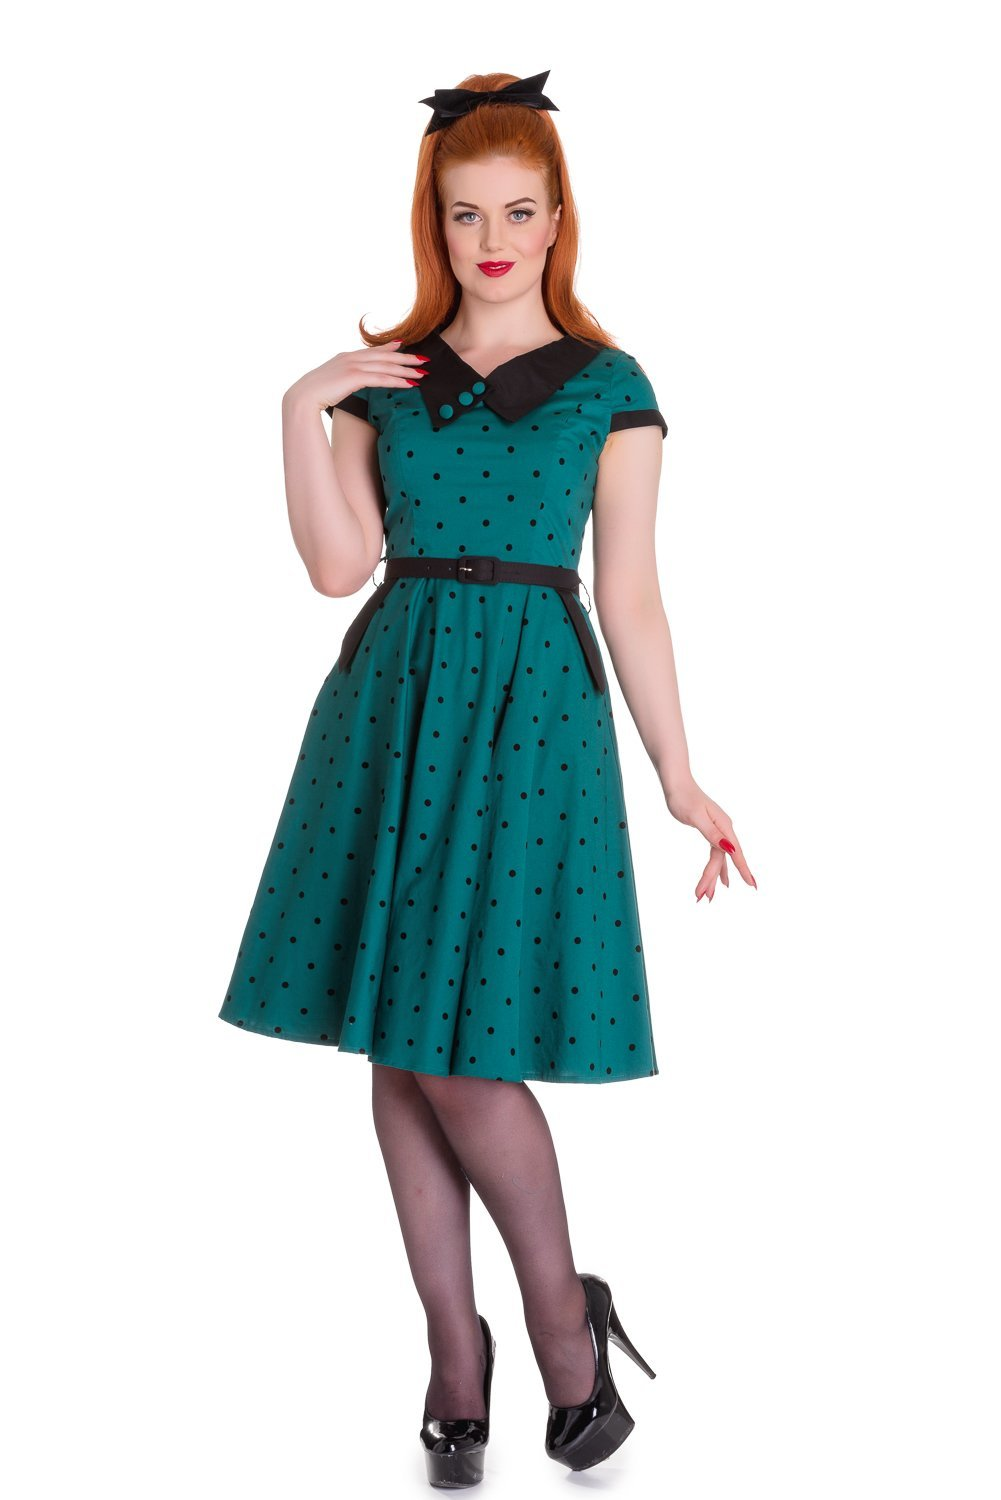 RKP83-Hell-Bunny-Brooke-Dress-Rockabilly-Pin-Up-Retro-Polka-Dot-Vintage-50-Swing